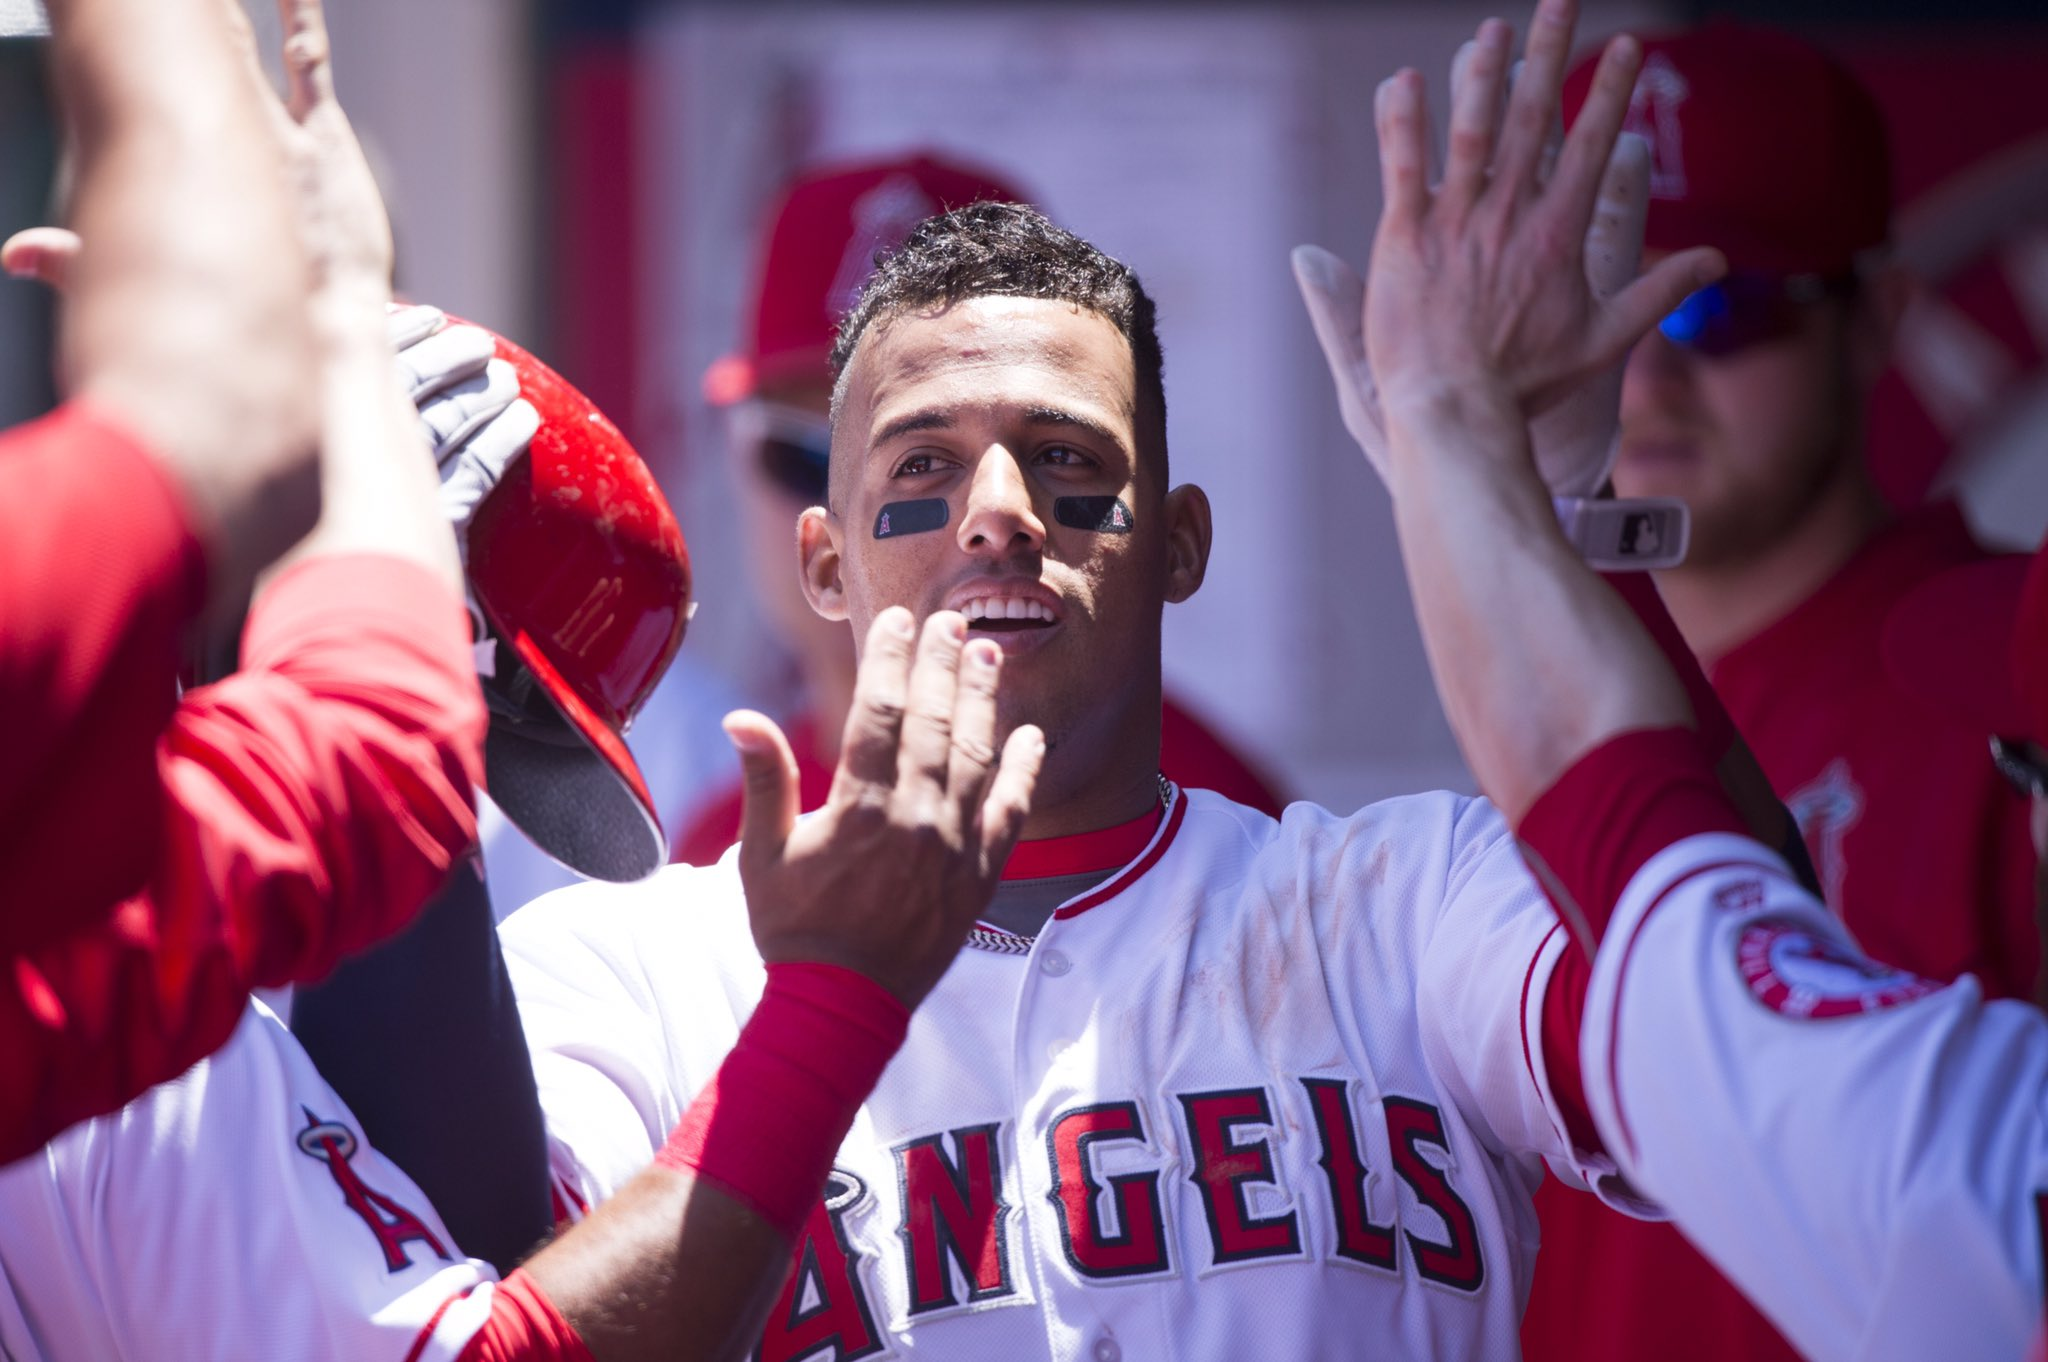 #Angels rally for 5 runs in the 3rd, extending the lead to 6-0 heading to the bottom of the 4th. https://t.co/Xbt7QuCC48